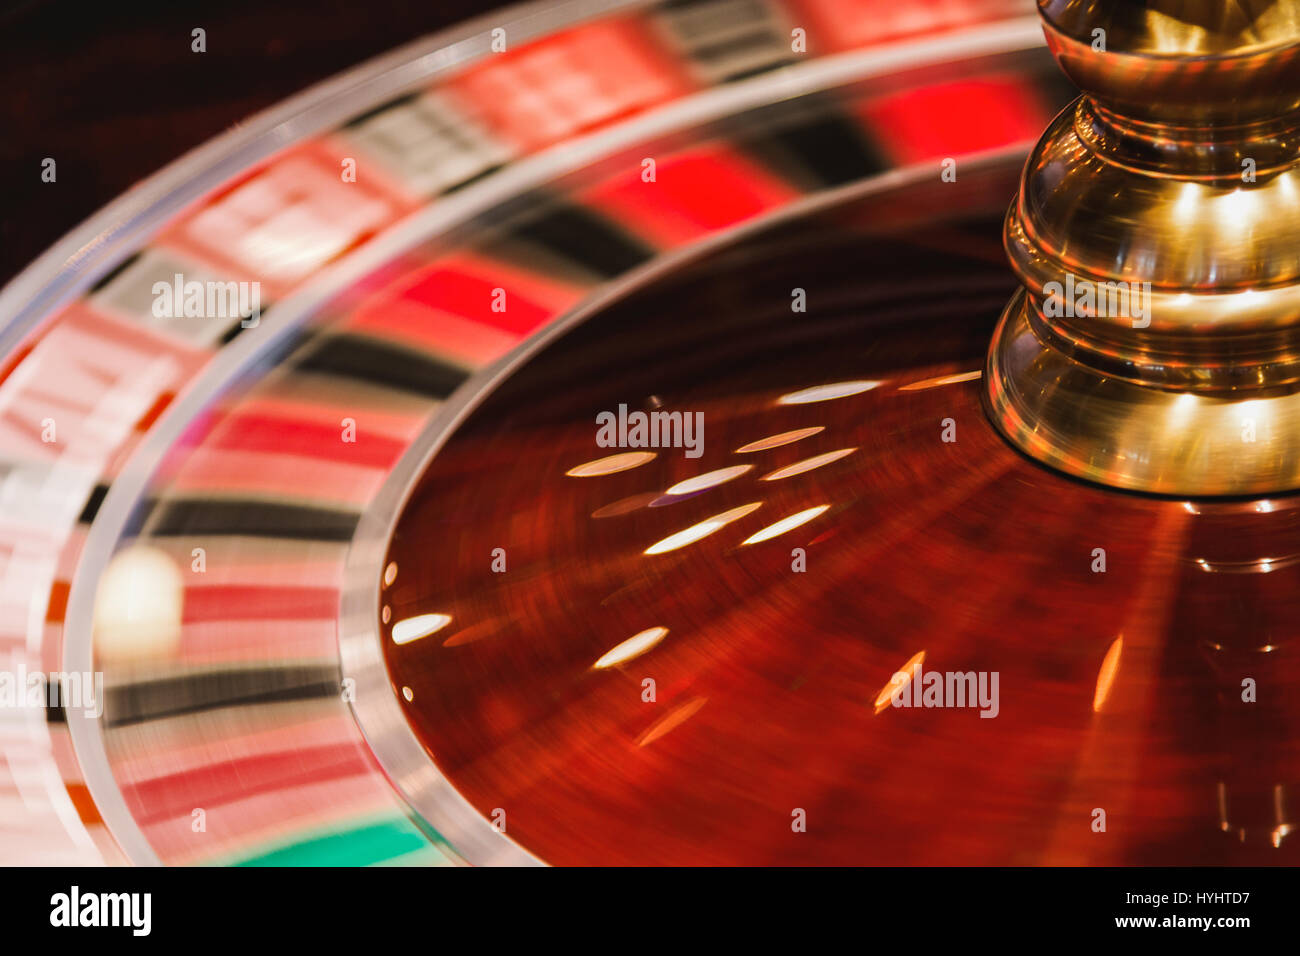 Wooden roulette buy black wooden roulette blackjack table led - Casino Roulette With White Ball In Motion Stock Image